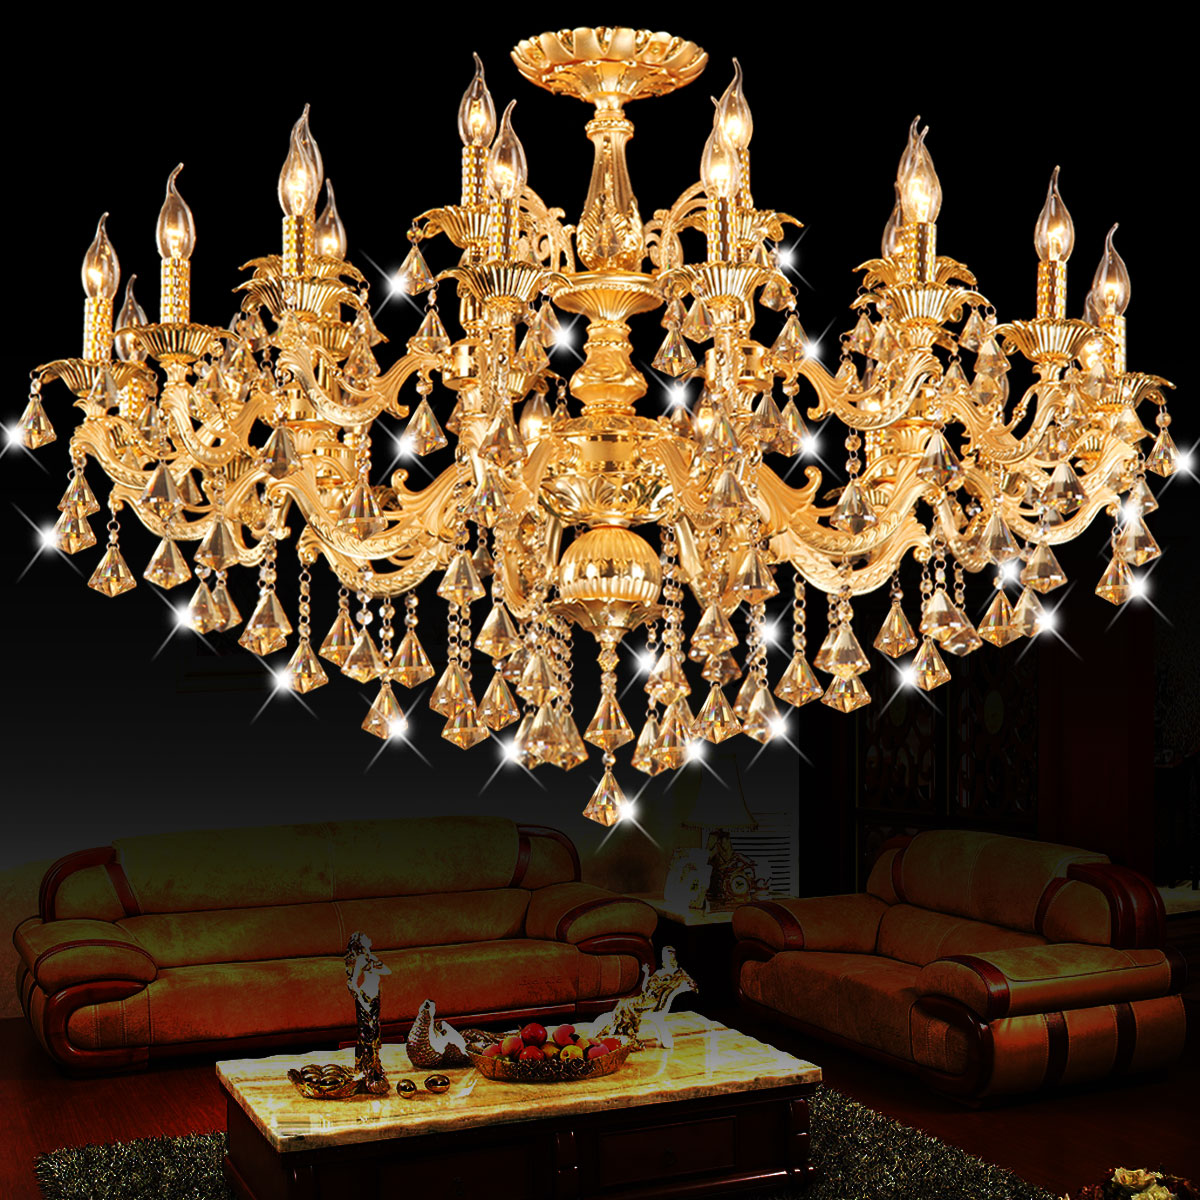 Large champagne led Candle chandelier for living room Dining Room 15-24 pcs E14 diamond pendant Crystal Chandelier led lustreLarge champagne led Candle chandelier for living room Dining Room 15-24 pcs E14 diamond pendant Crystal Chandelier led lustre